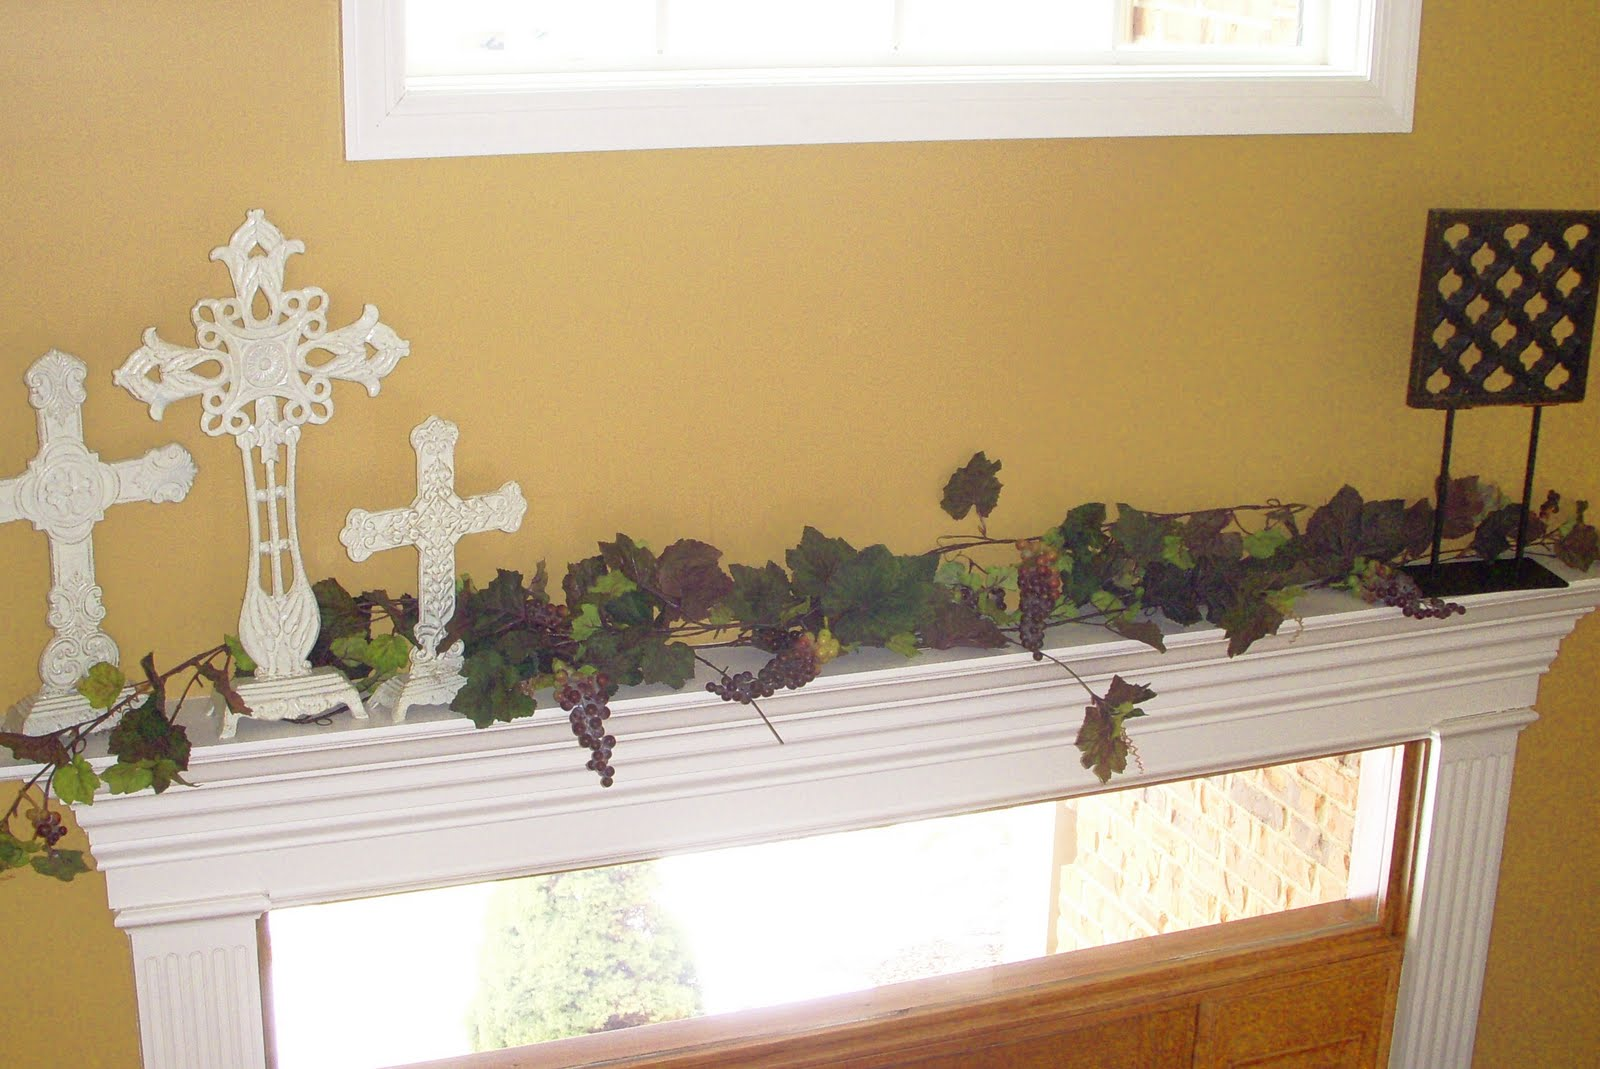 Hope Studios: Does a Mantle Have to be Above a Fireplace?